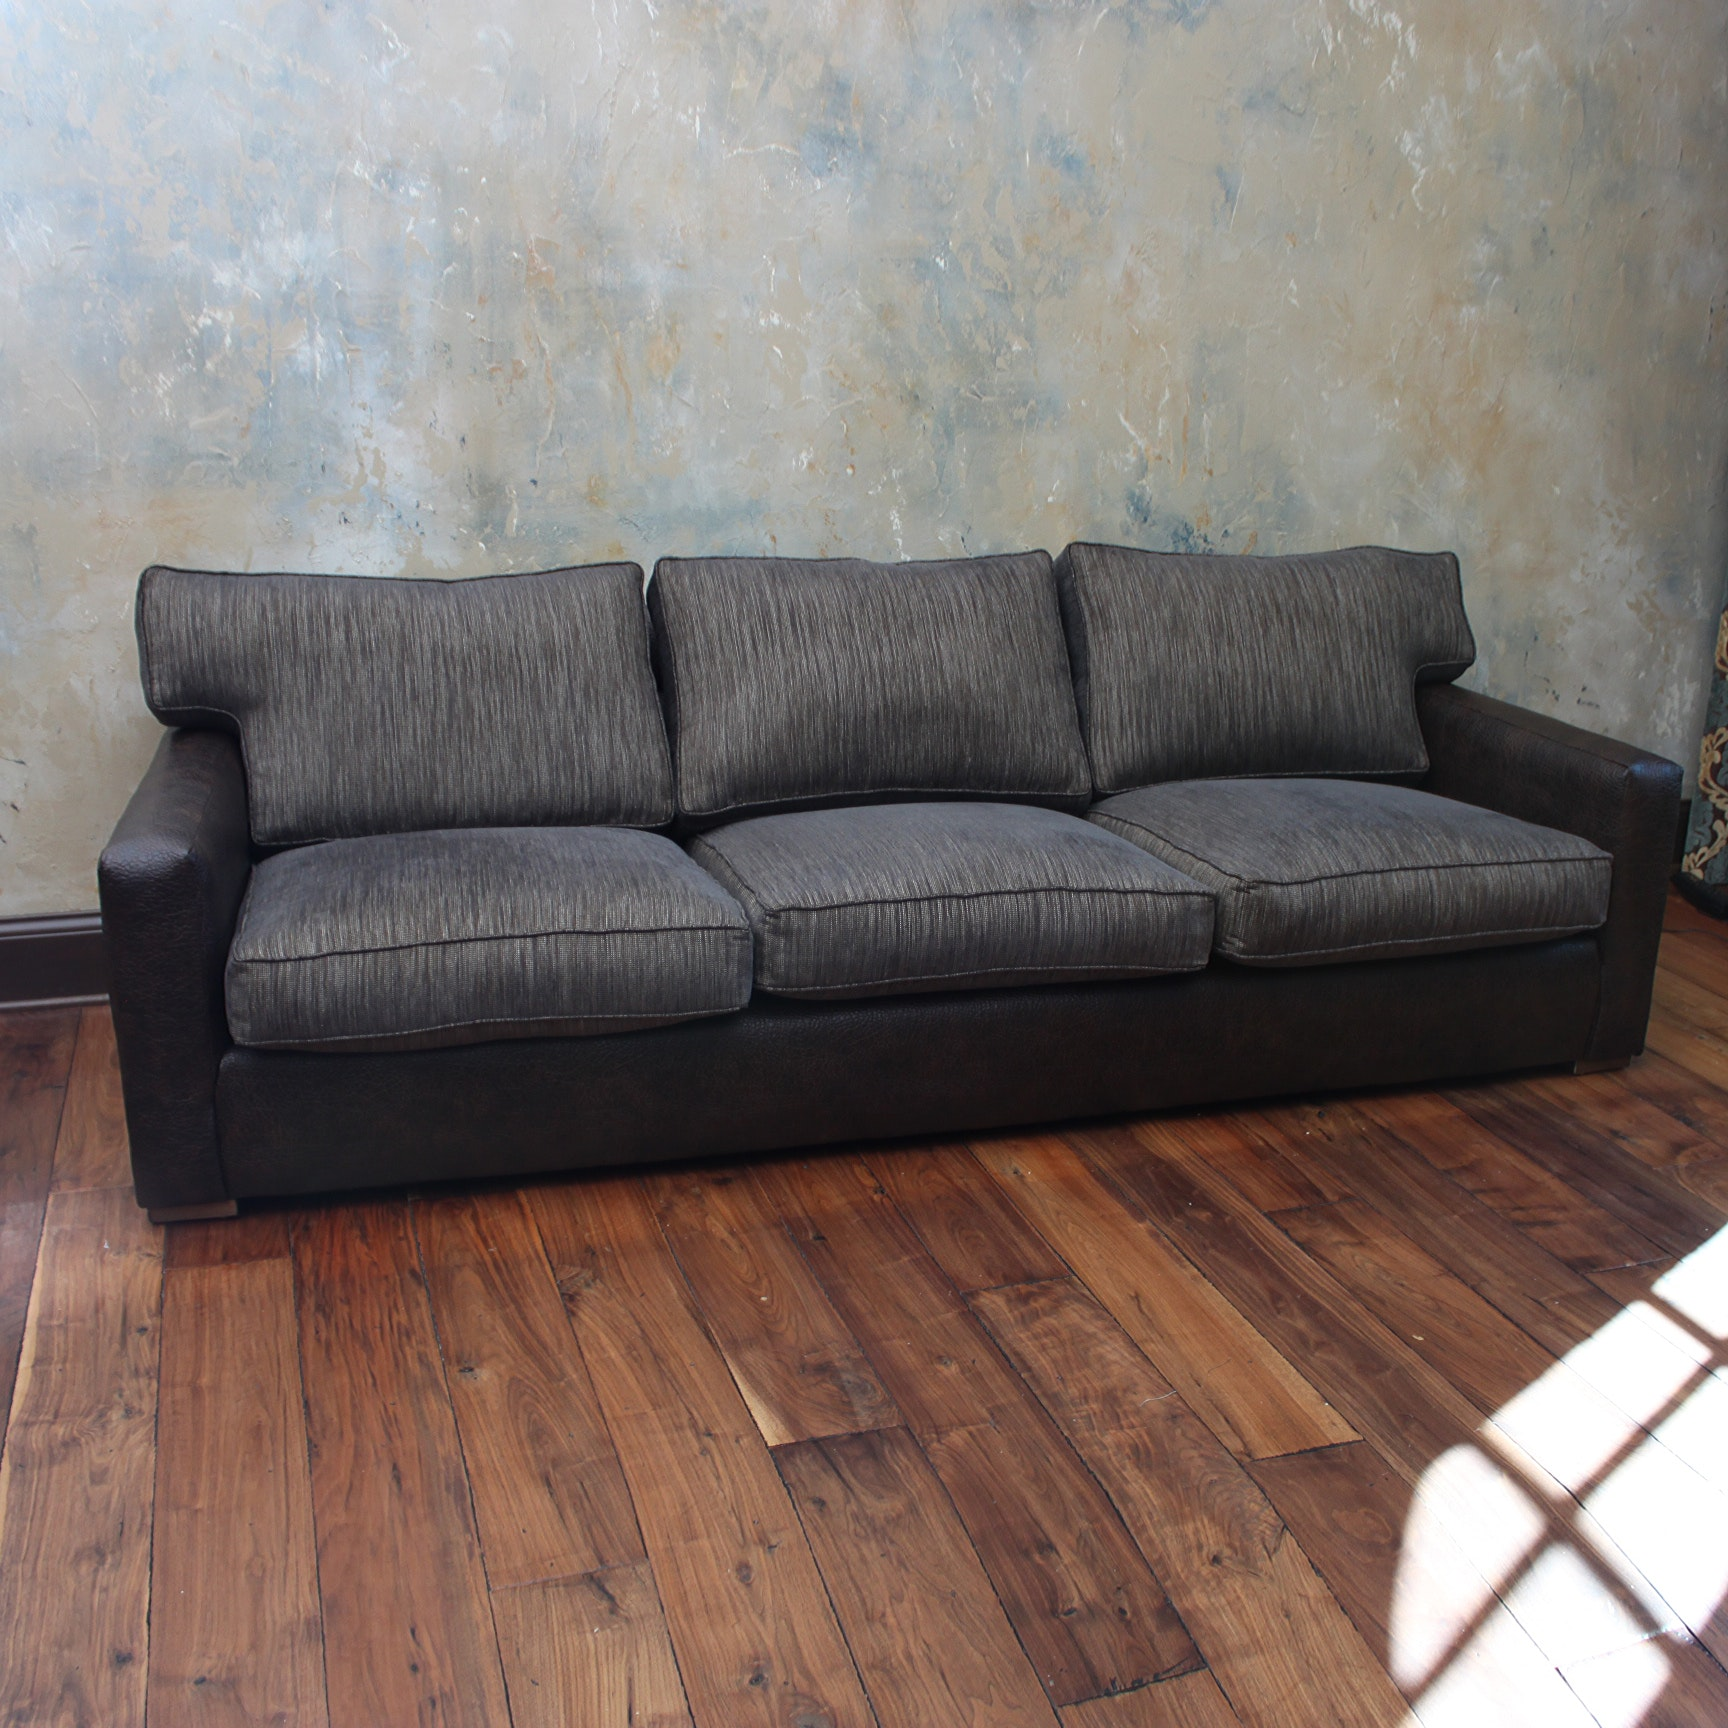 Professionally Re-Upholstered A. Rudin Sofa